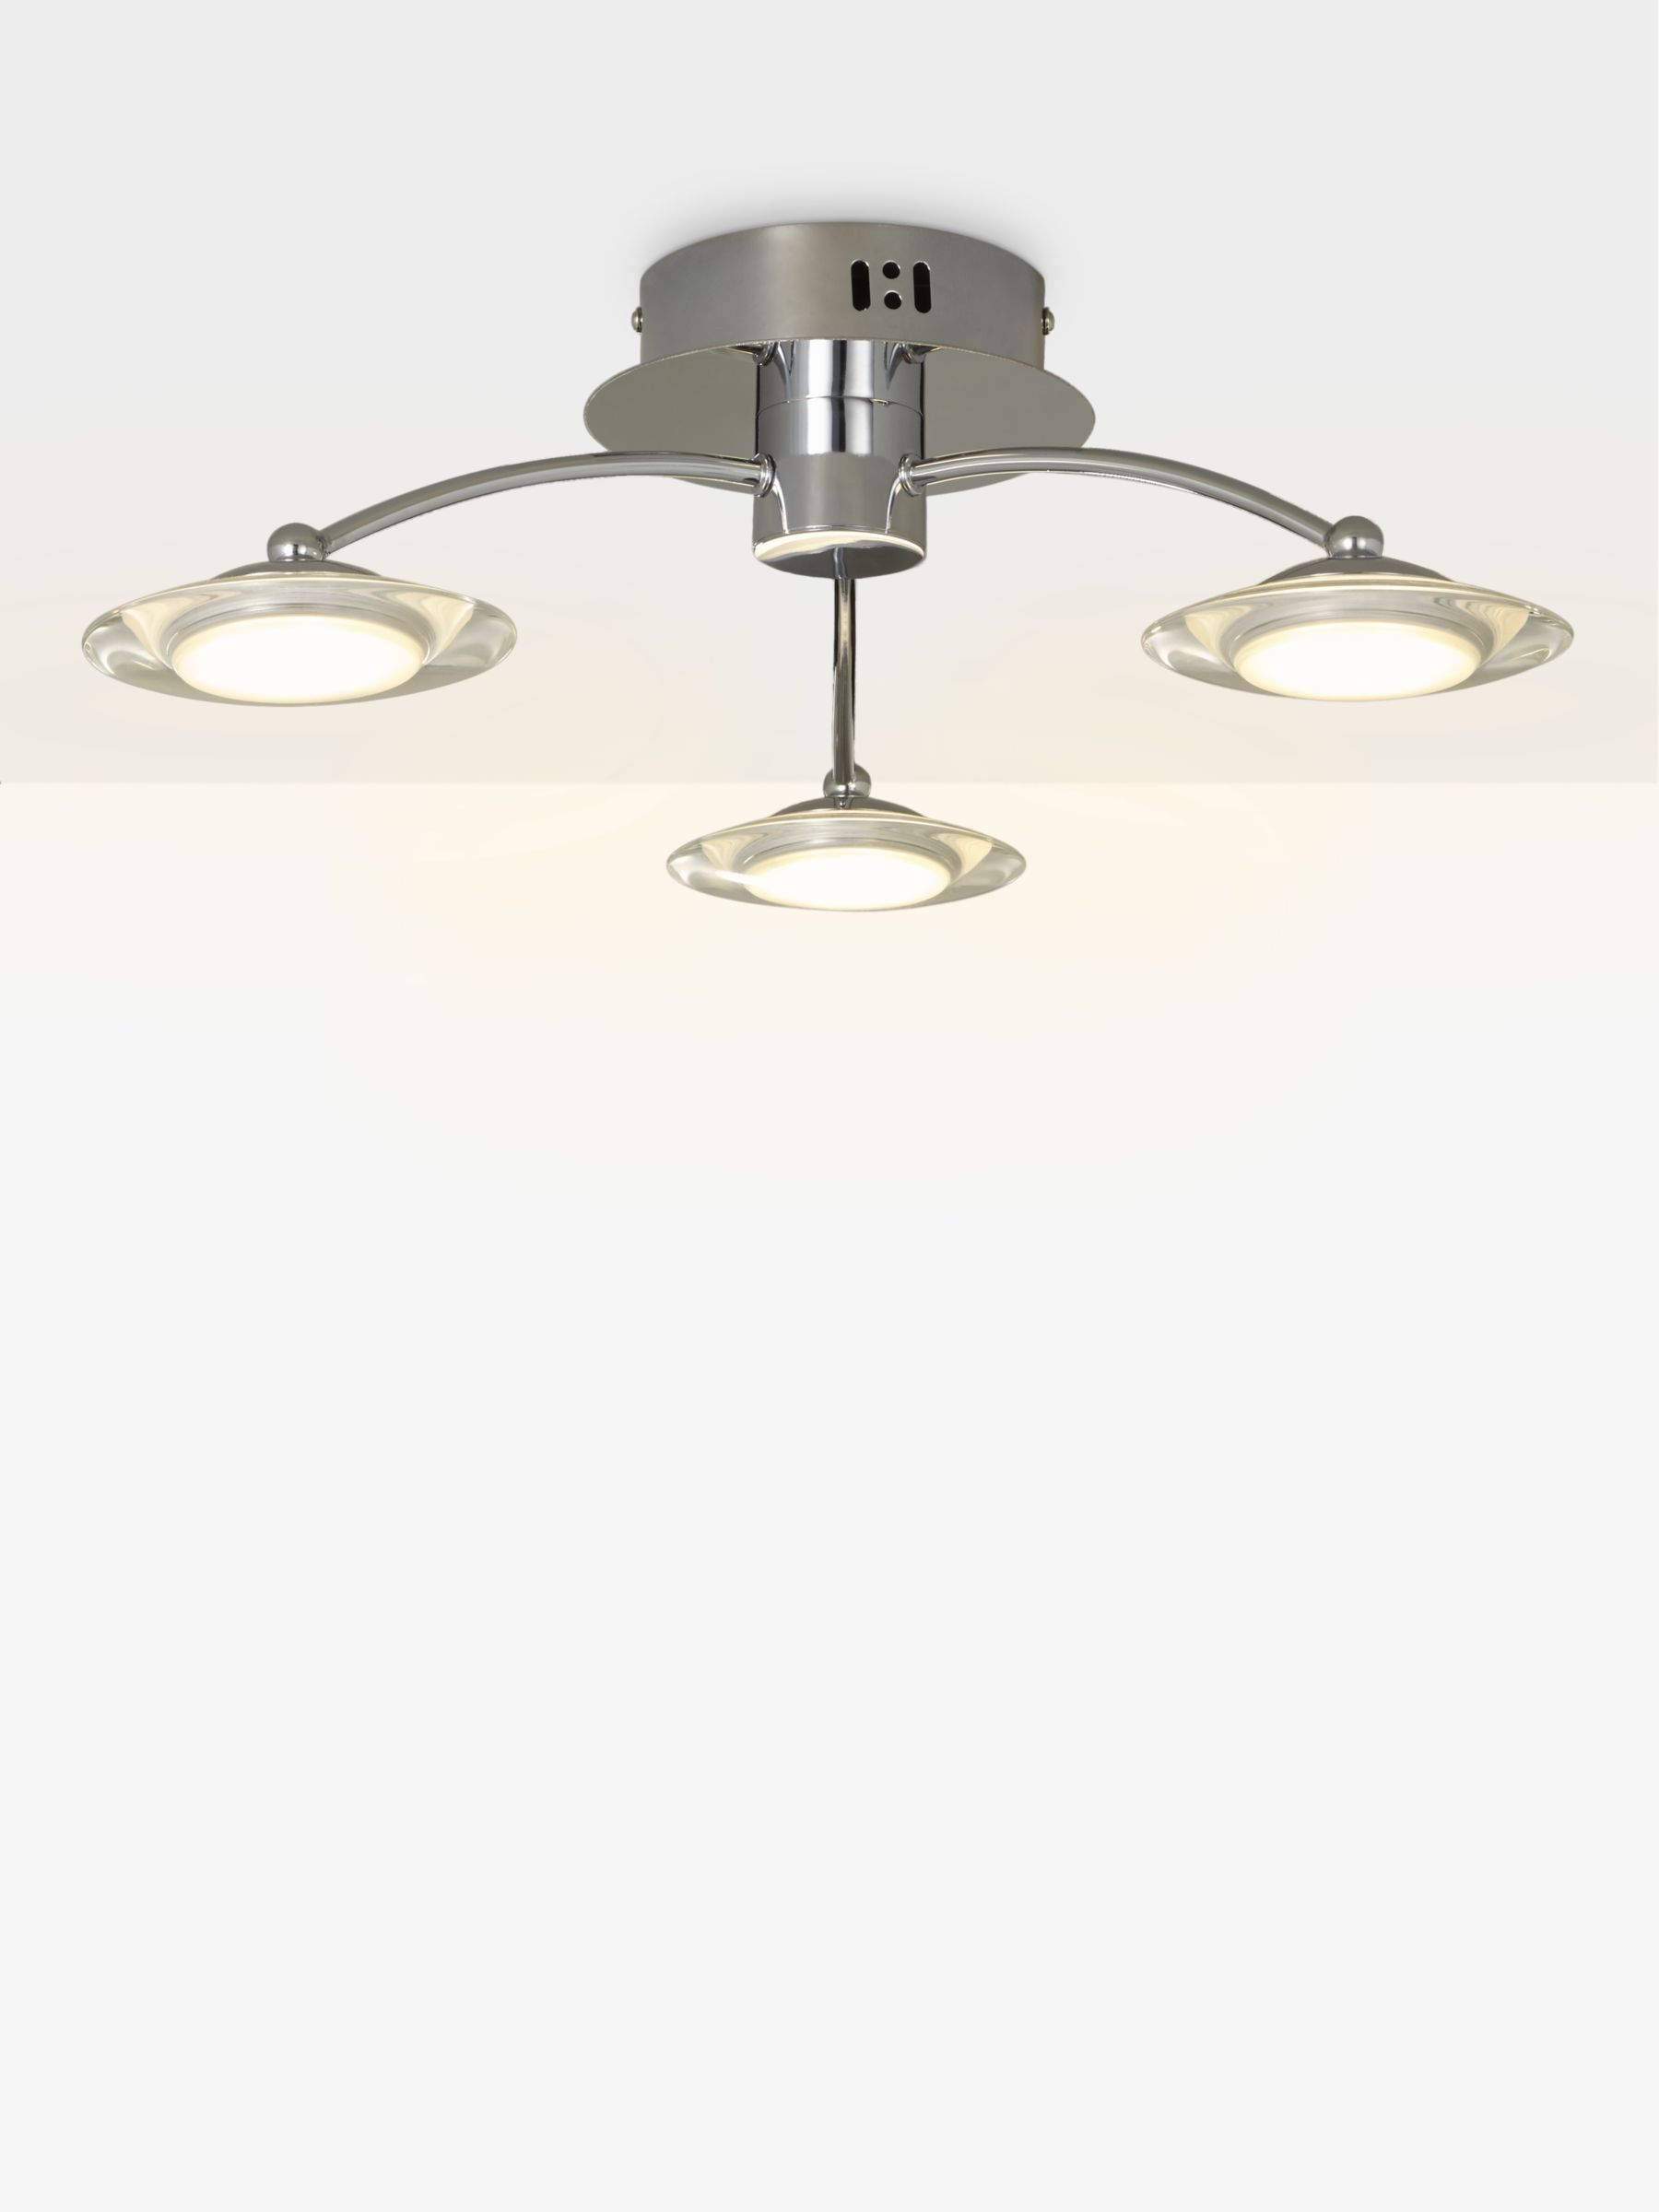 Buy John Lewis Jasper 3 Arm LED Ceiling Light, Chrome John Lewis